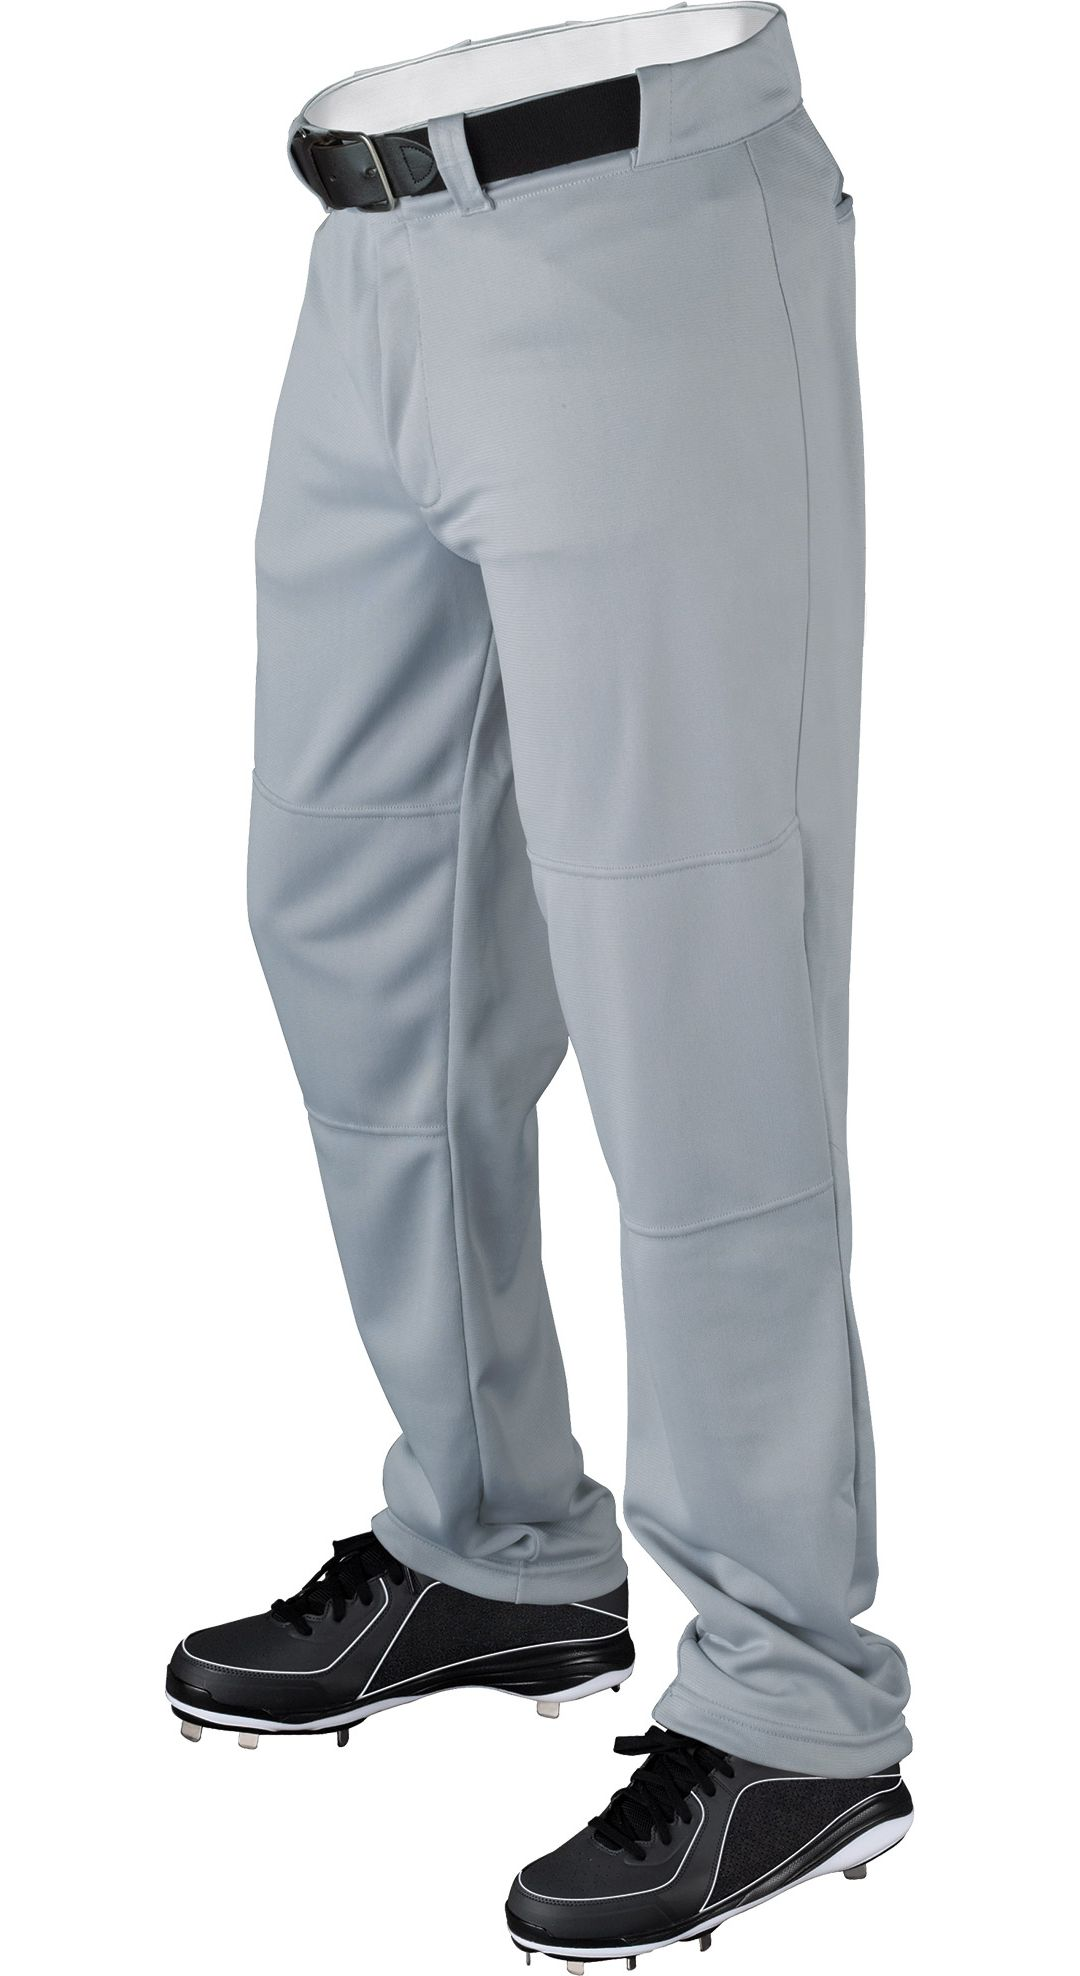 93a54c5c64 Wilson Boys' Relaxed Fit Baseball Pants